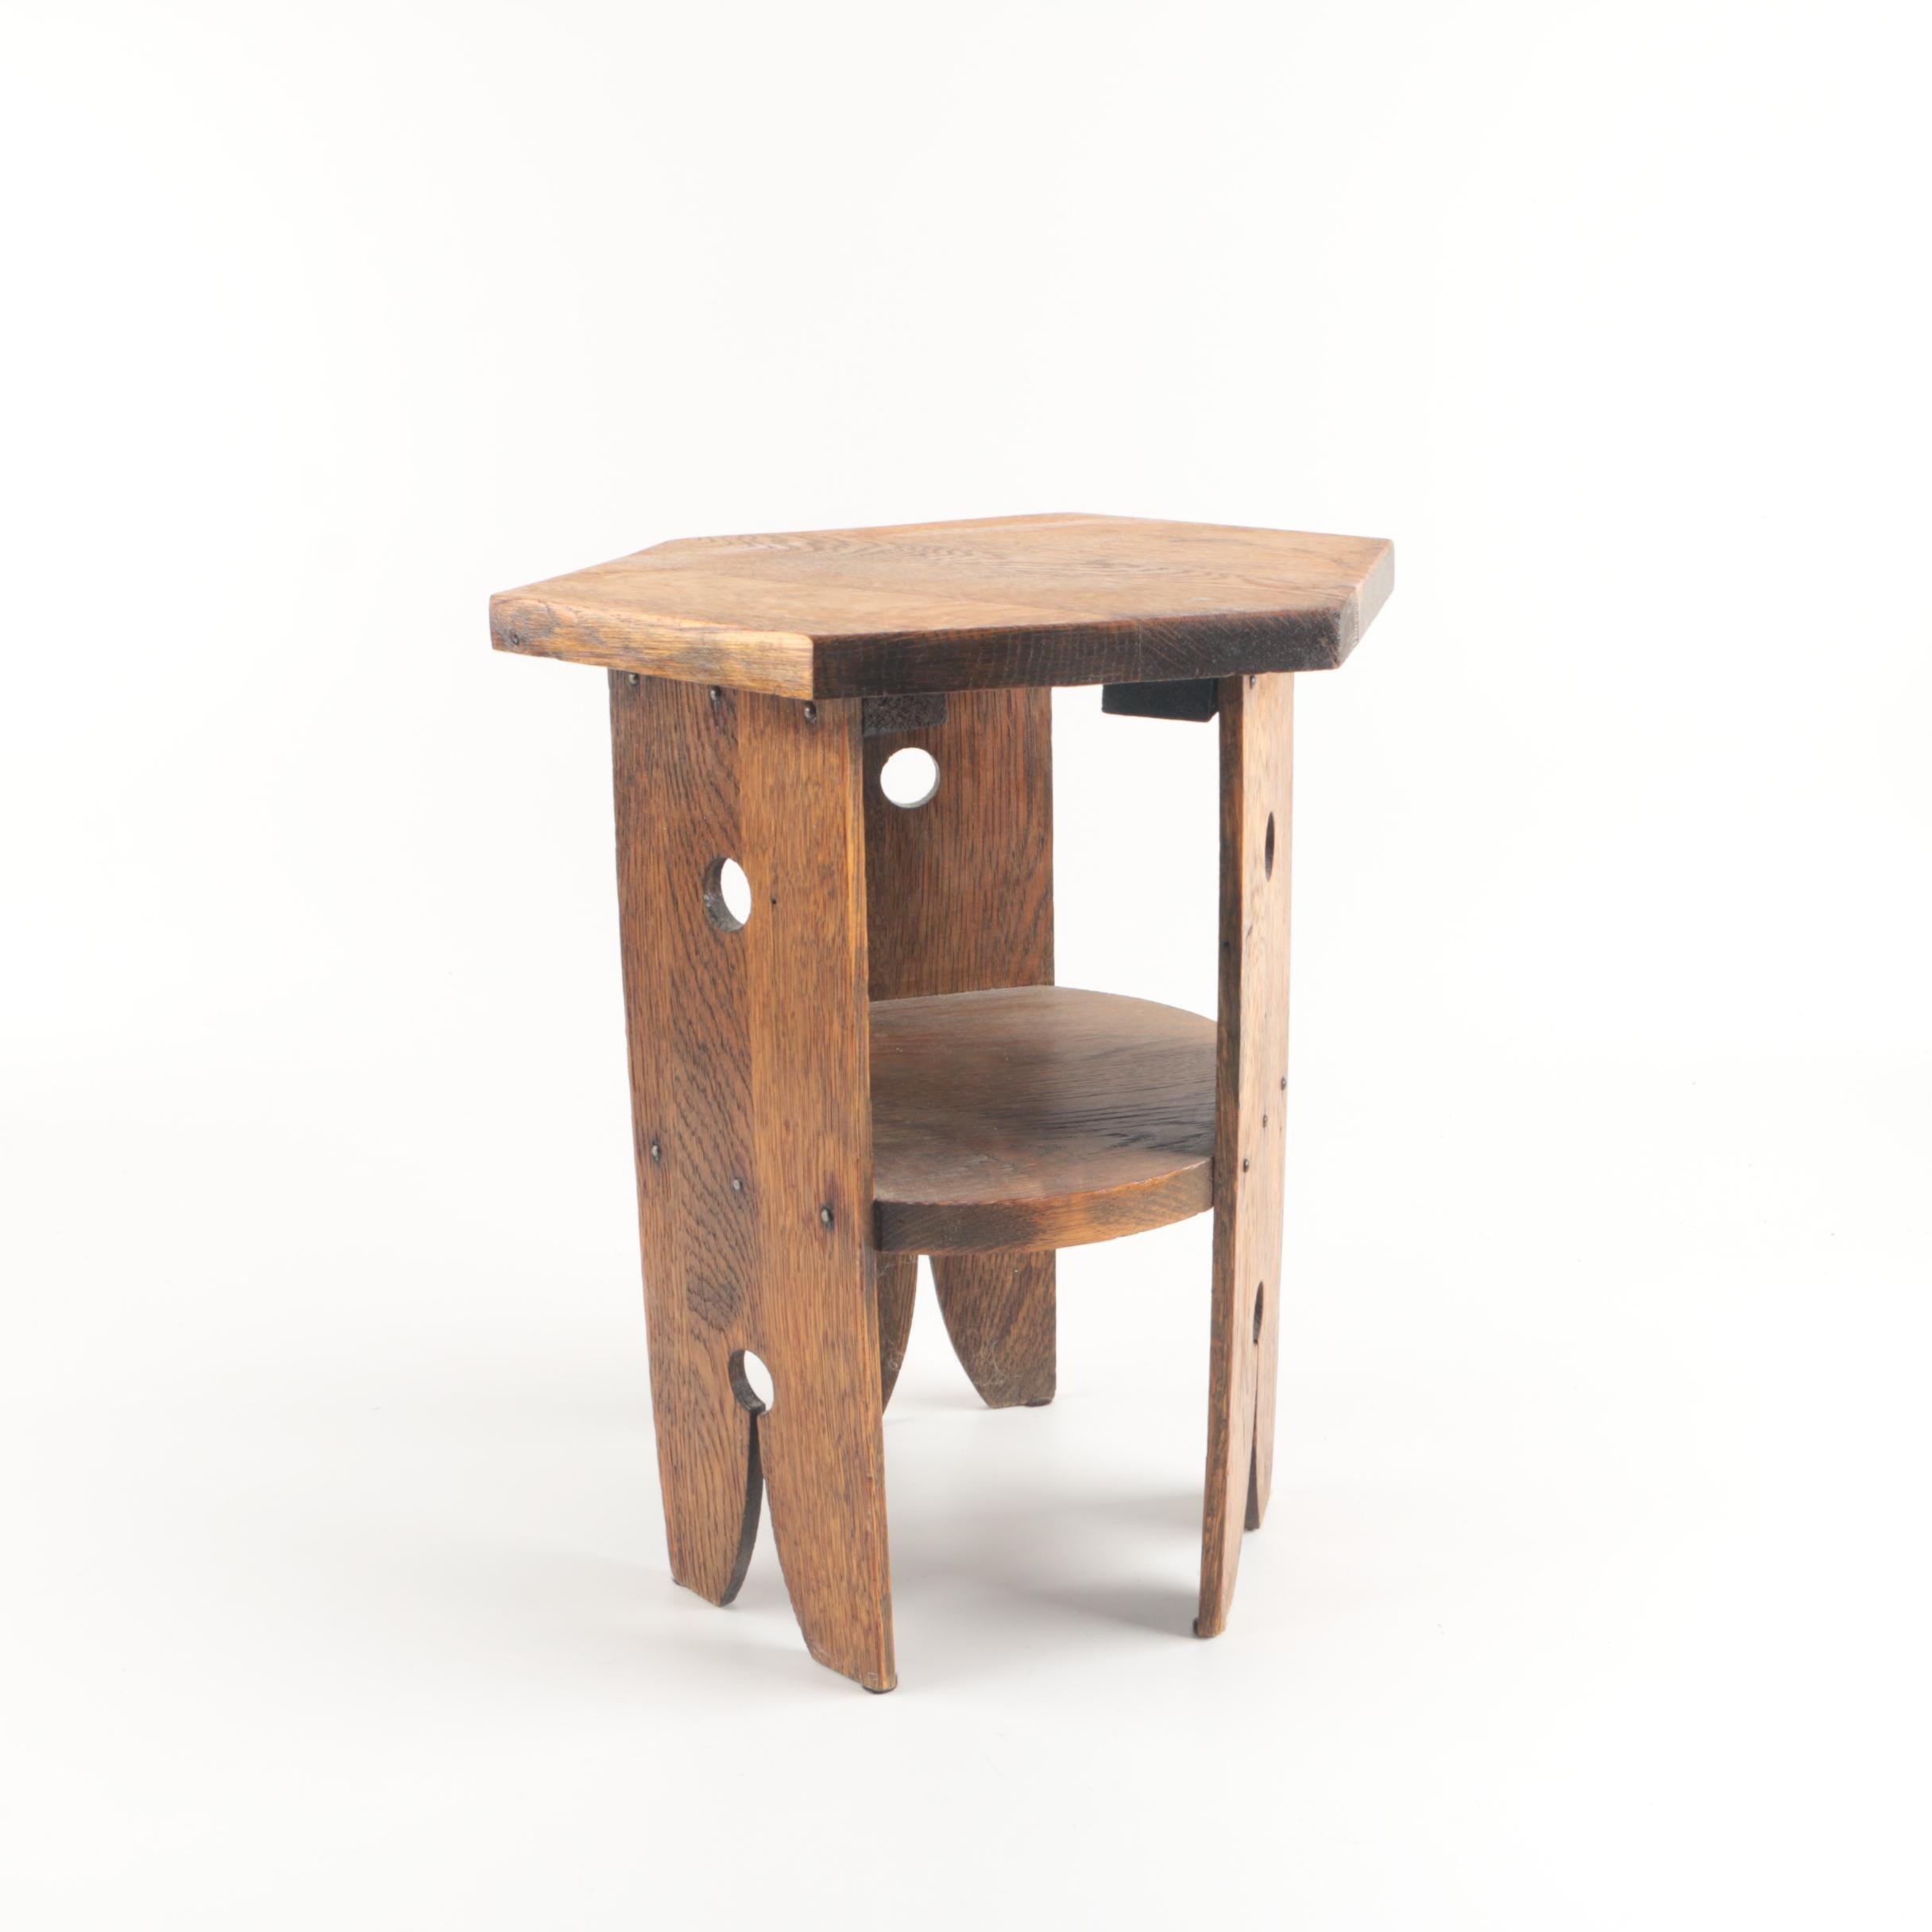 Mission Style Oak Plant Stand or Stool